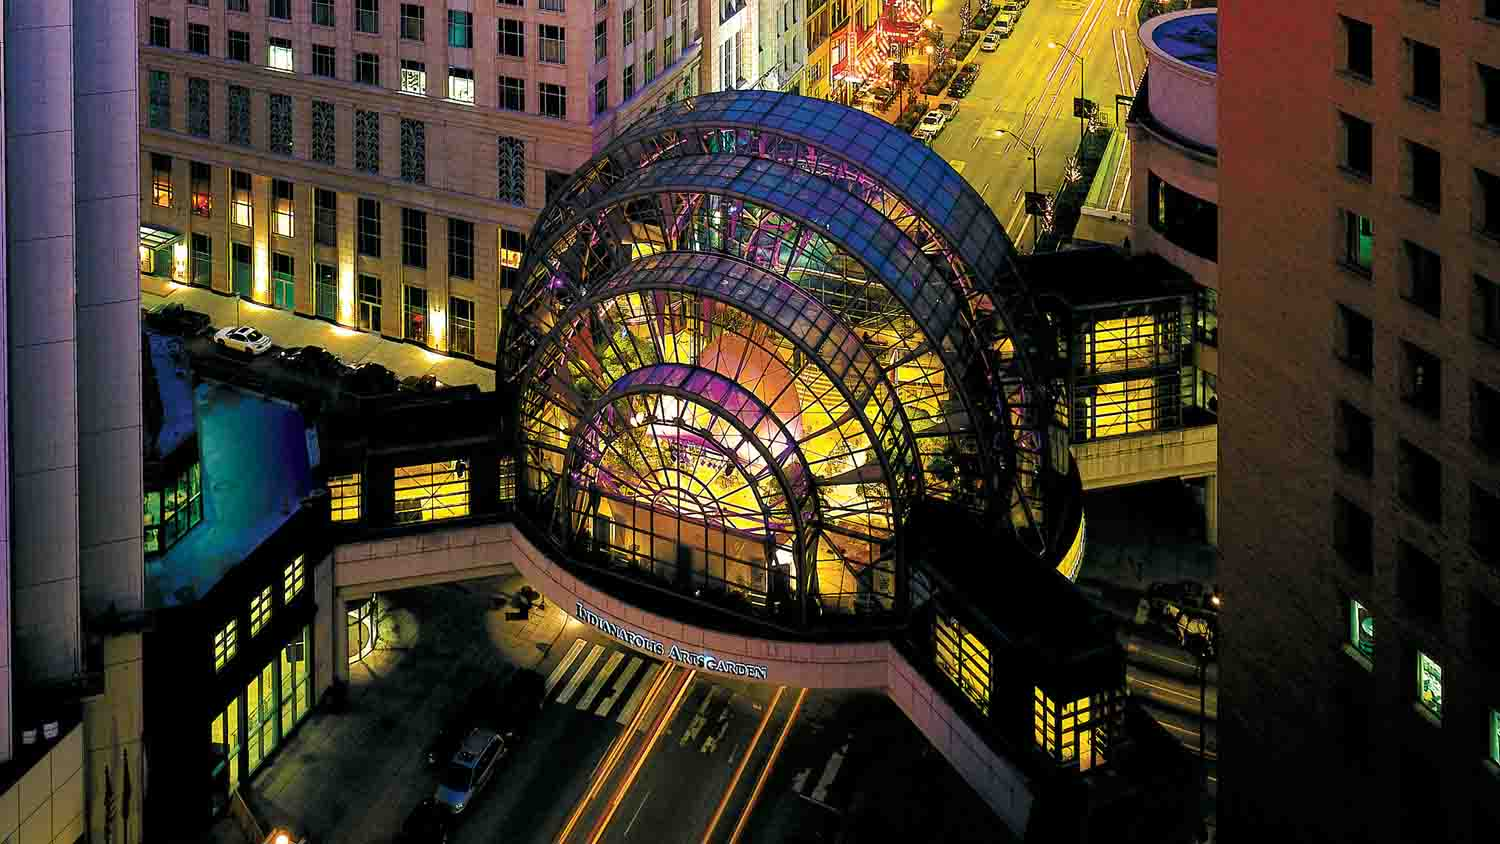 Indianapolis Artsgarden/Visitor Center 3